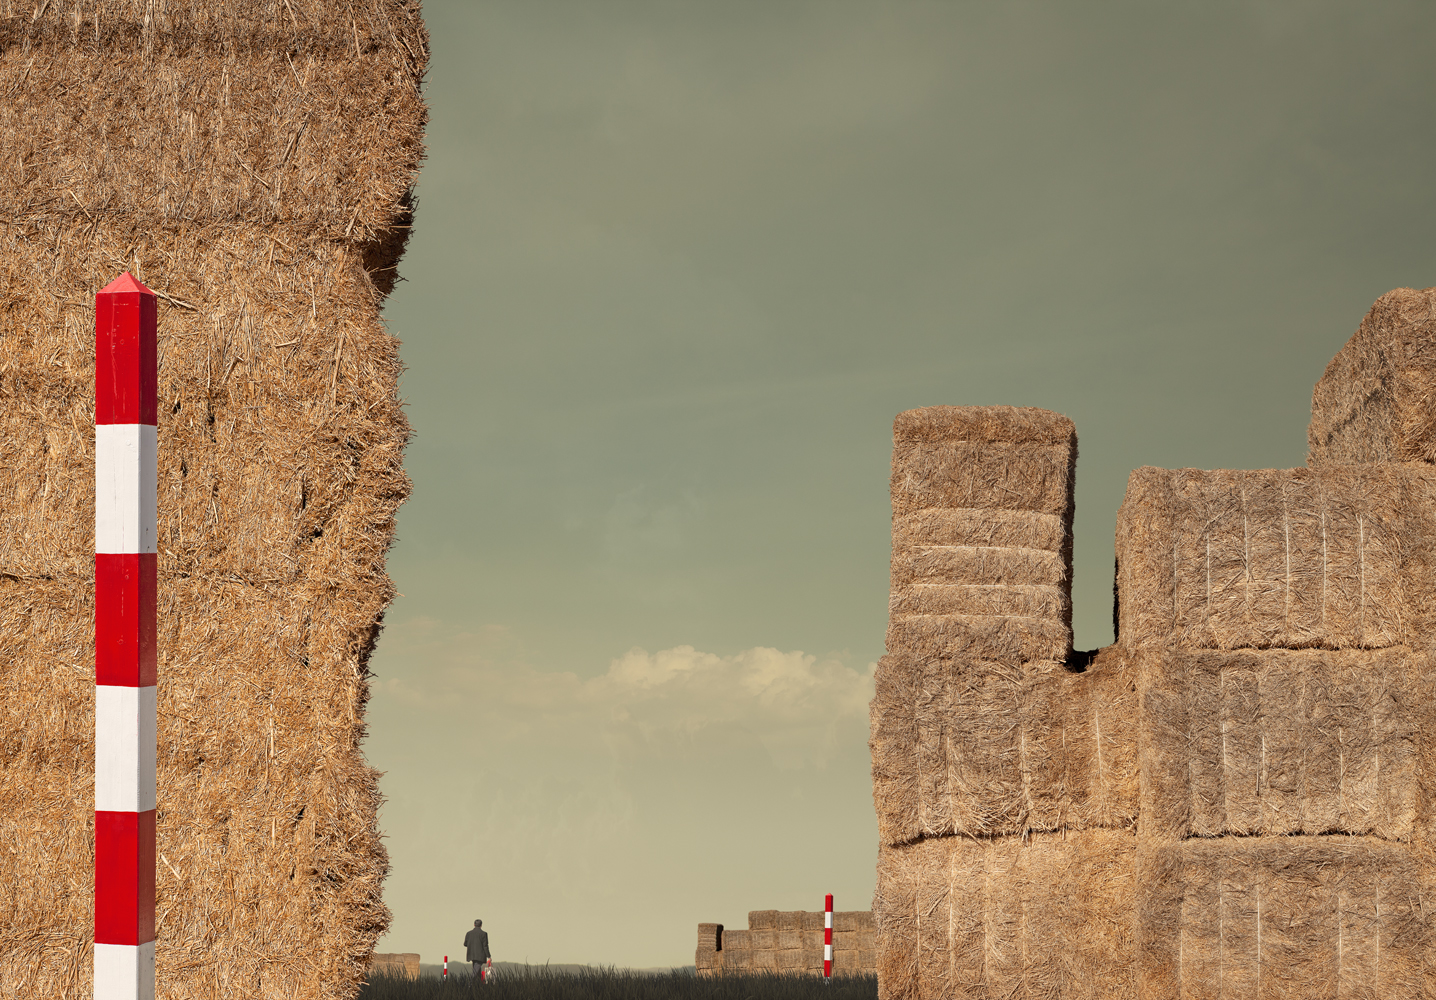 Hay Field, 2013   Pigment print on archival rag   100 x 143cm  /Edition of 5 +2AP   Represented by  Otomys Arthouse